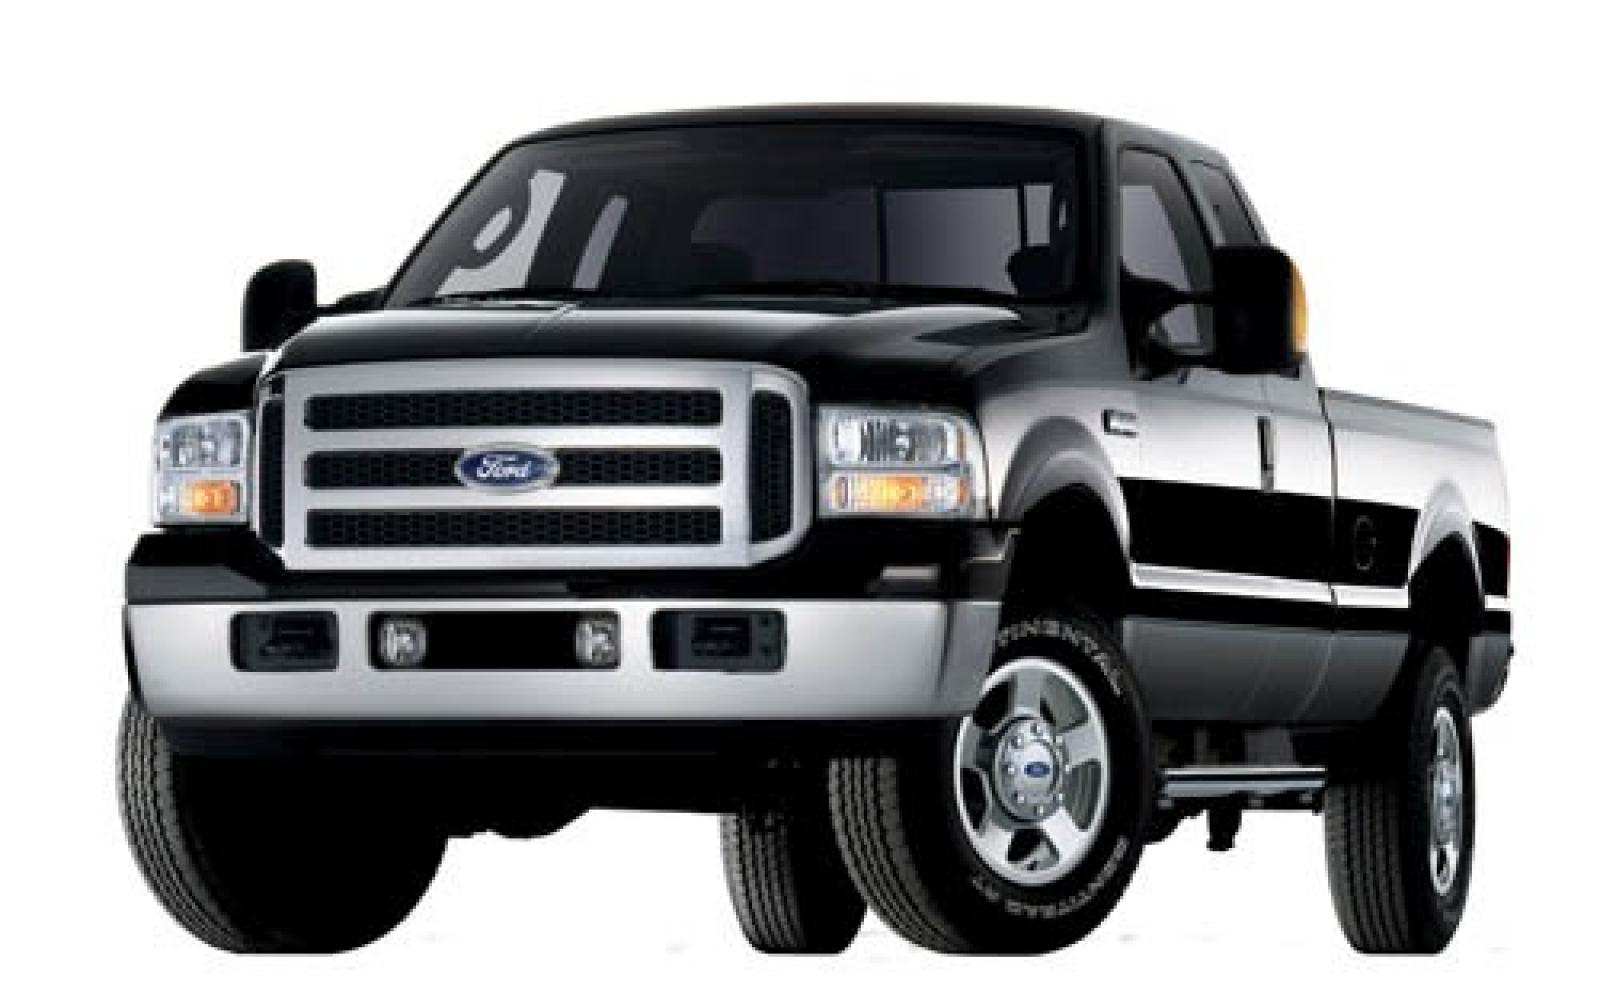 2007 ford f 350 super duty information and photos zombiedrive. Black Bedroom Furniture Sets. Home Design Ideas